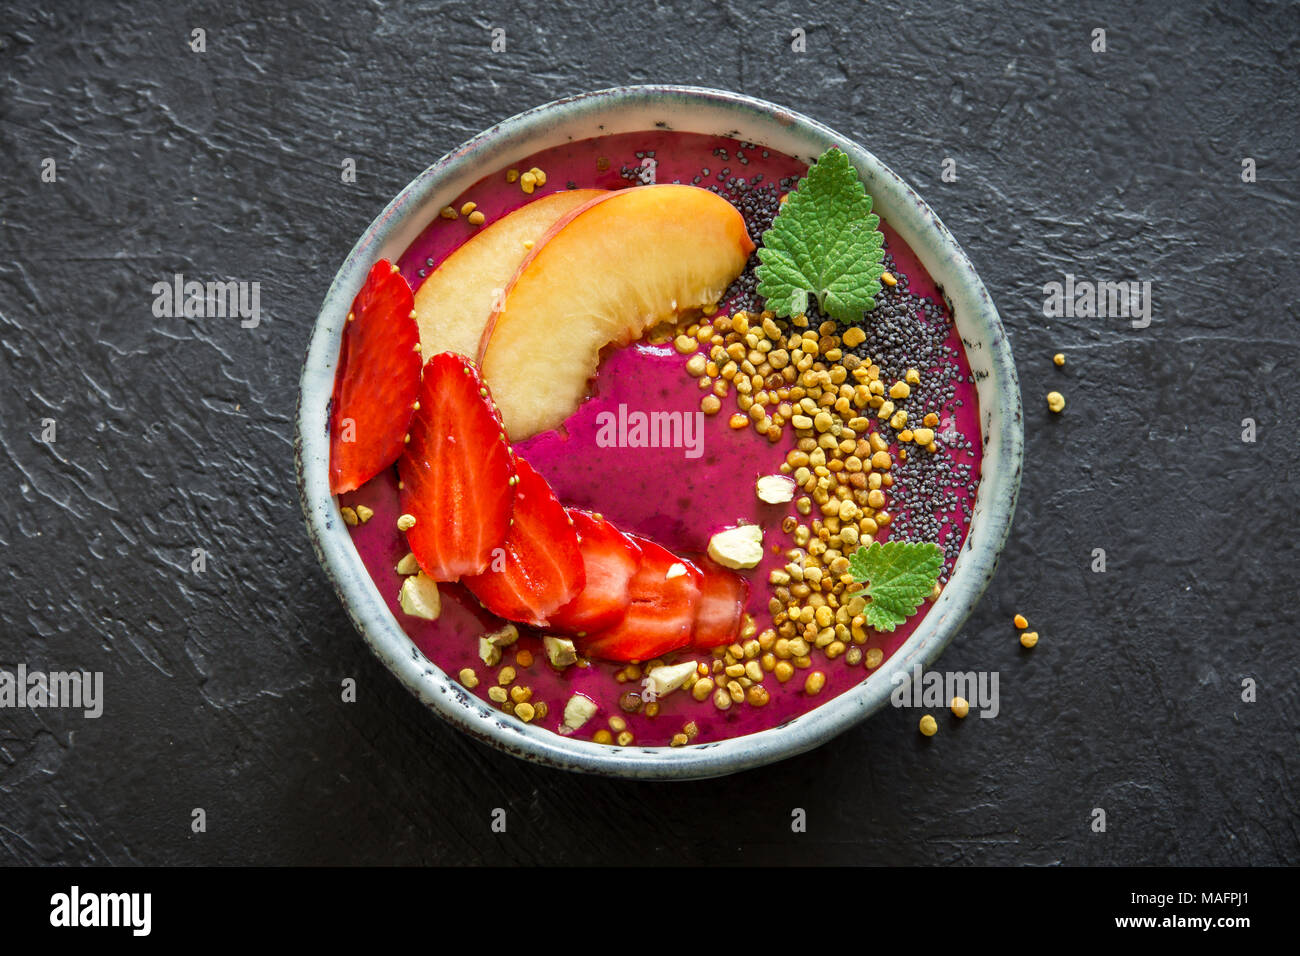 Acai smoothie bowl with chia seeds, fruits, berries (strawberries) and bee pollen for healthy vegan vegetarian diet raw breakfast. Breakfast smoothie Stock Photo